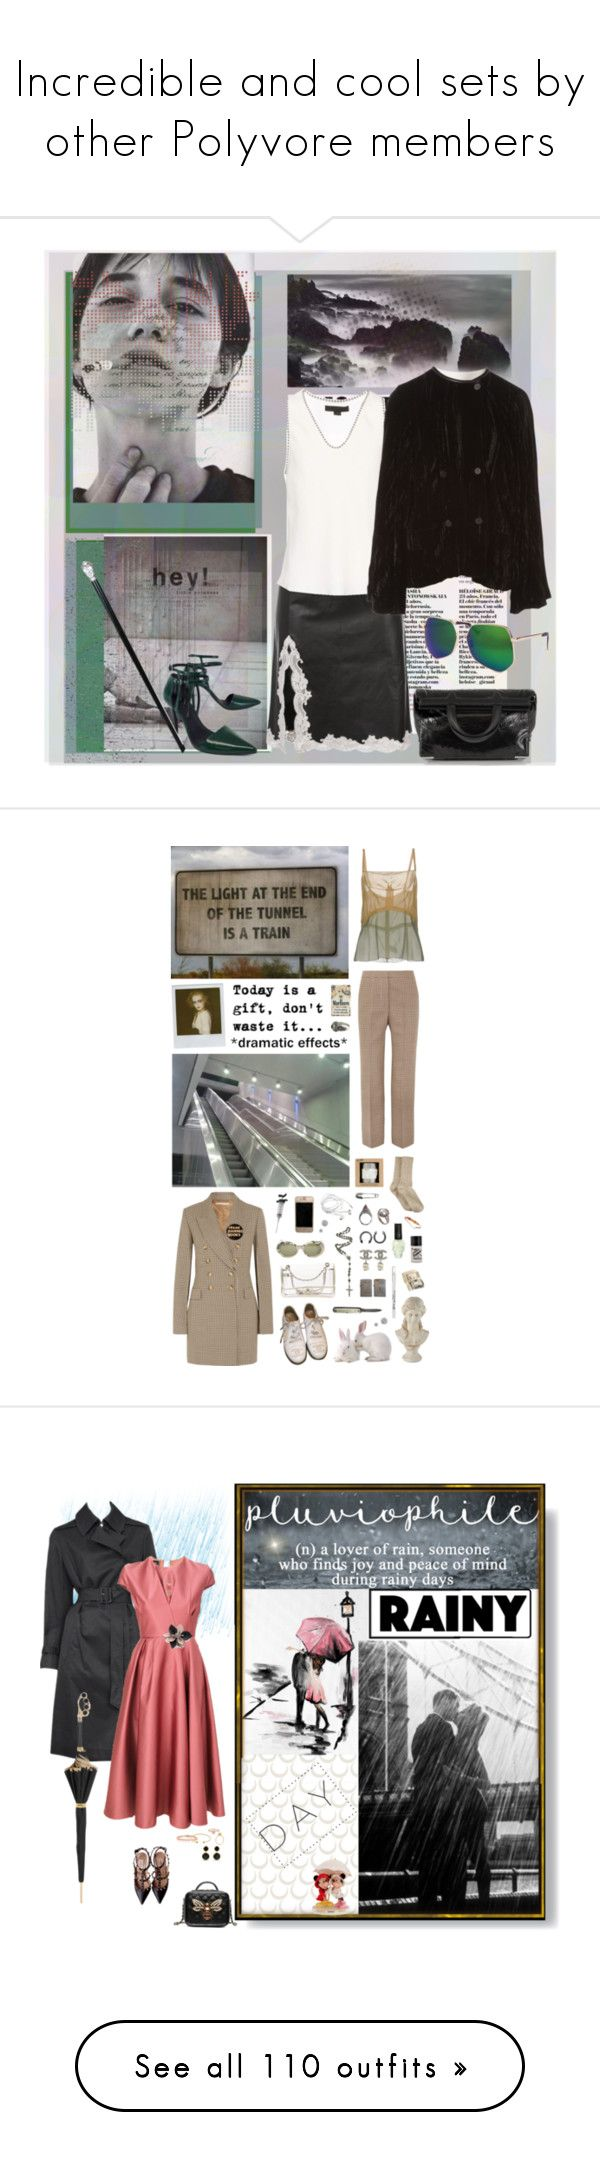 """Incredible and cool sets by other Polyvore members"" by sunnydays4everkh ❤ liked on Polyvore featuring Alexander Wang, Grey Ant, STELLA McCARTNEY, Marni, Universal Lighting and Decor, Chanel, HUE, November, American Apparel and Zippo"